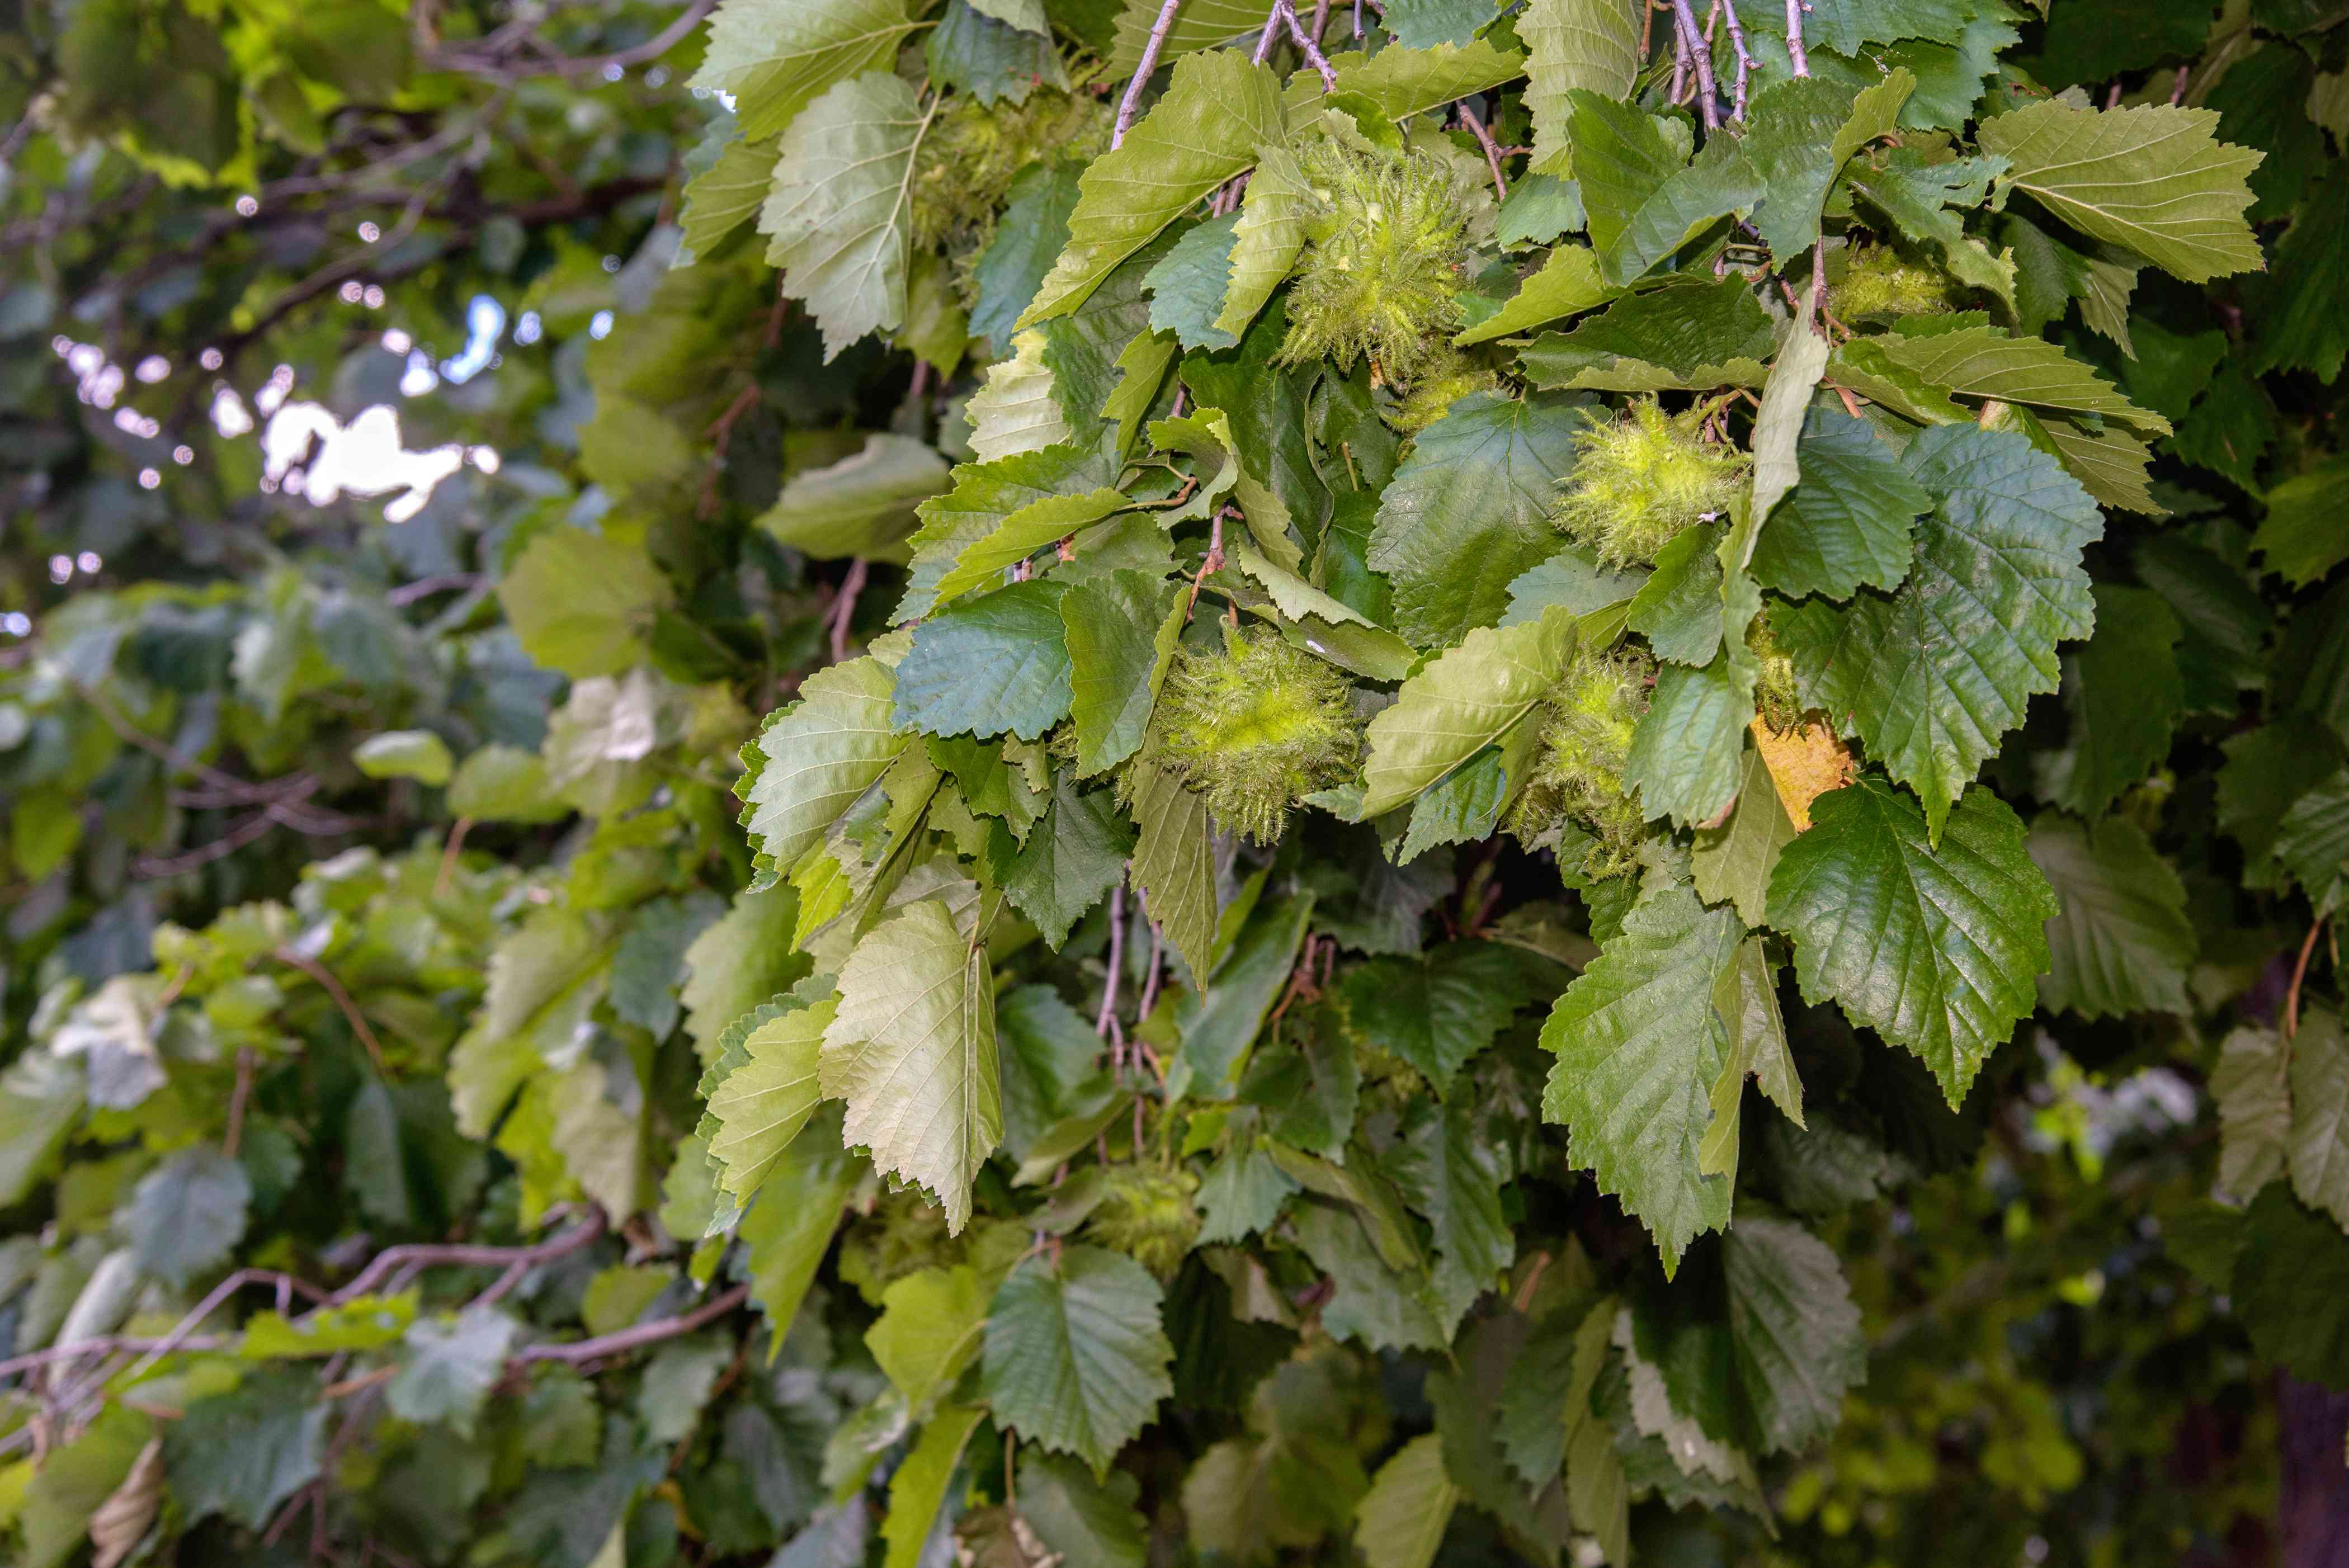 Beaked hazelnut shrub branch with green spiked acorns hanging surrounded by leaves